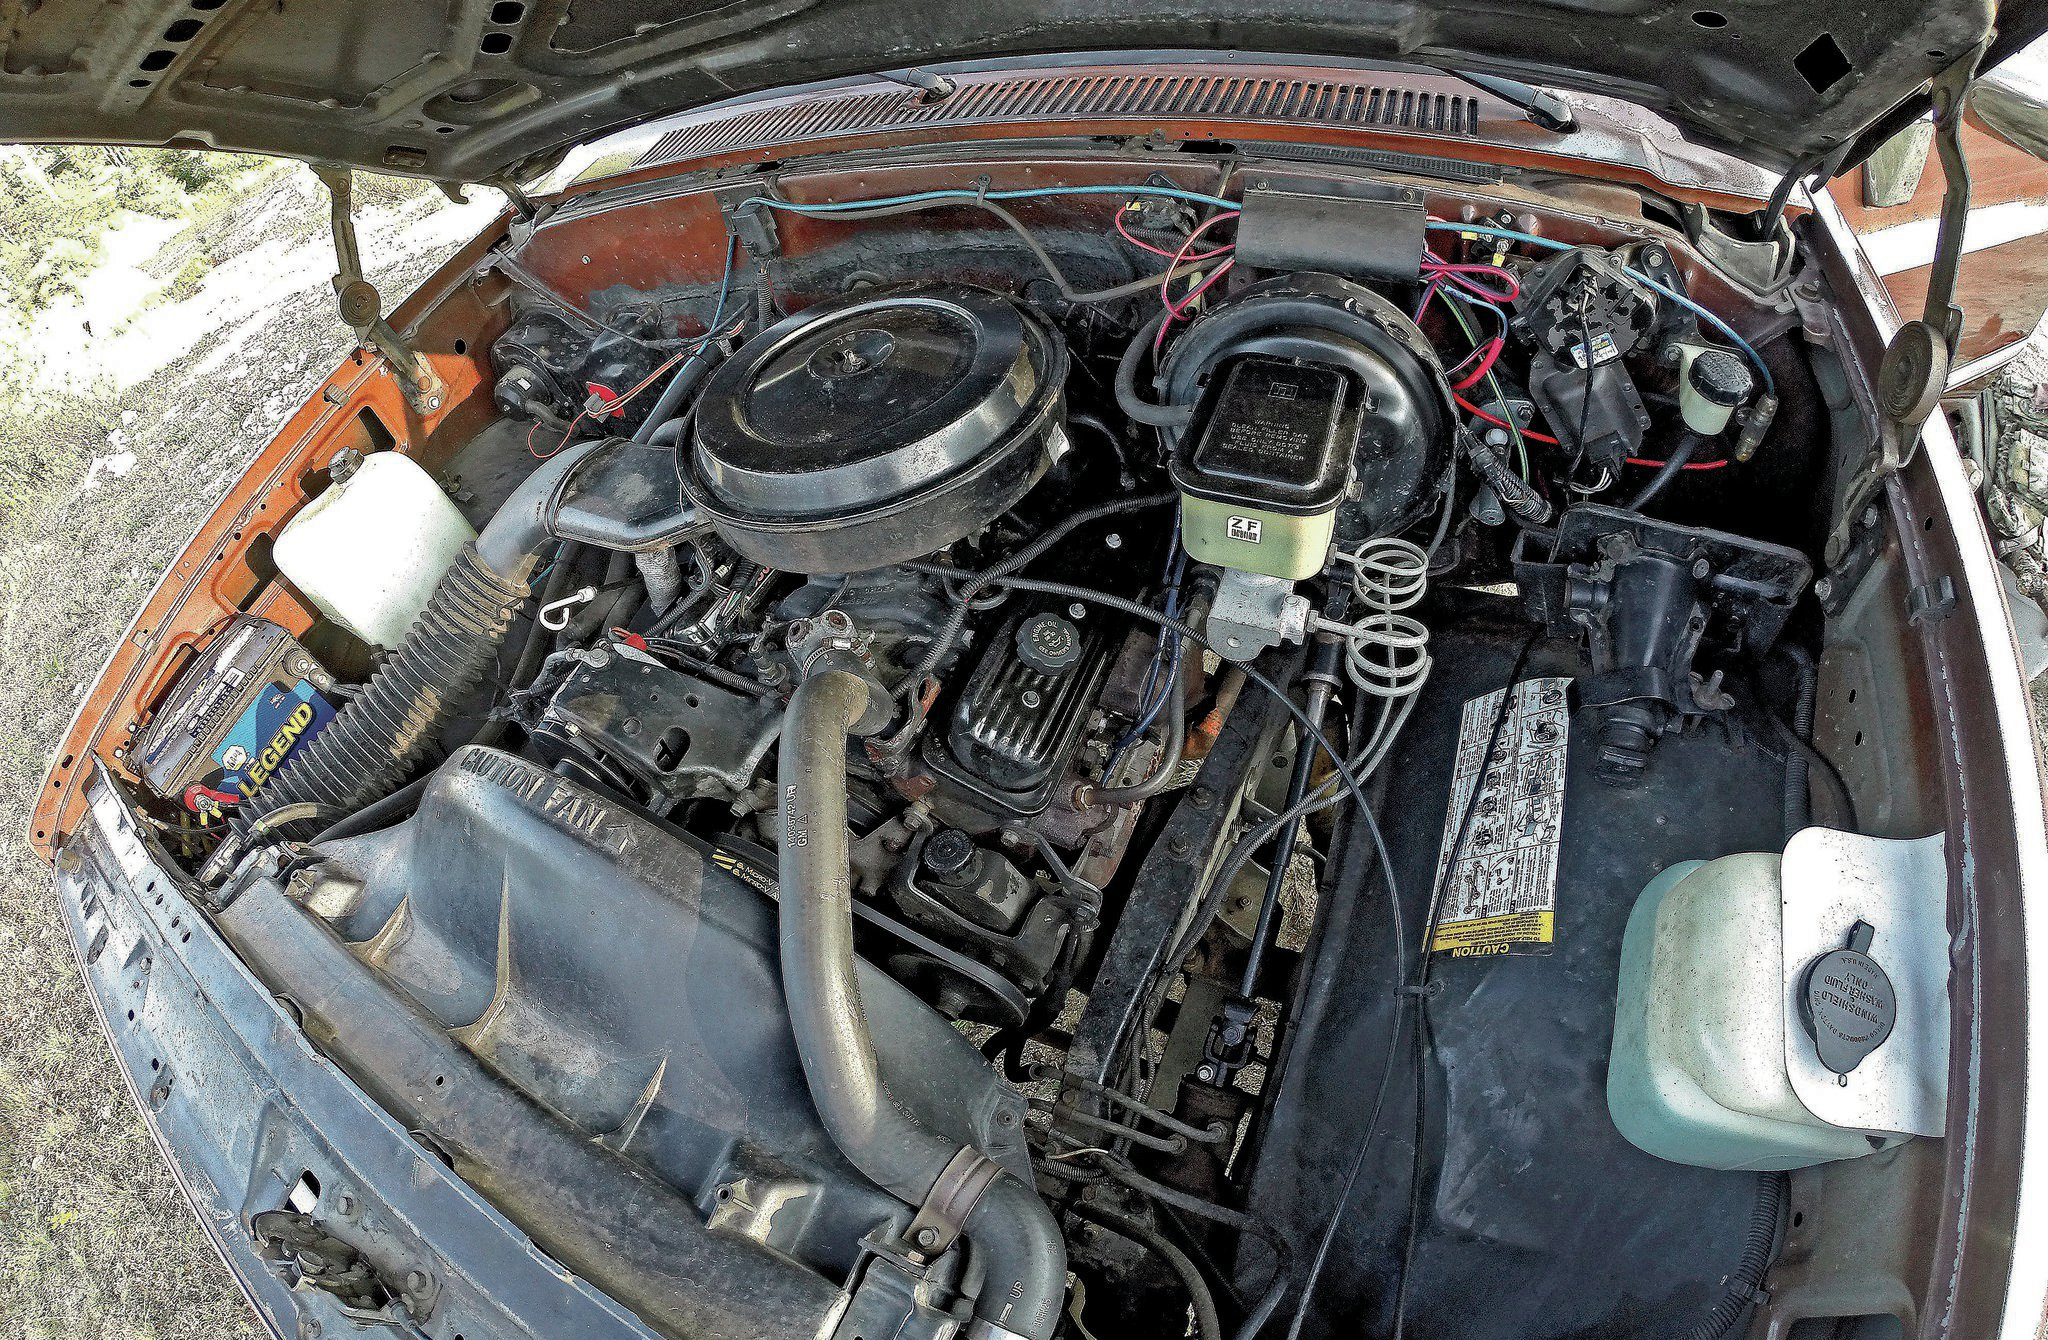 "Often referred to as ""the carburetor of fuel injection,"" the factory throttle-body injection atop B.O.B.'s 350 powerplant (while not conducive to big power gains with aftermarket engine and/or injection components) is eminently simple and sledgehammer reliable. Additionally, B.O.B.'s previous owner kept up to date on all underhood maintenance, which paves a smoother road for us up ahead."